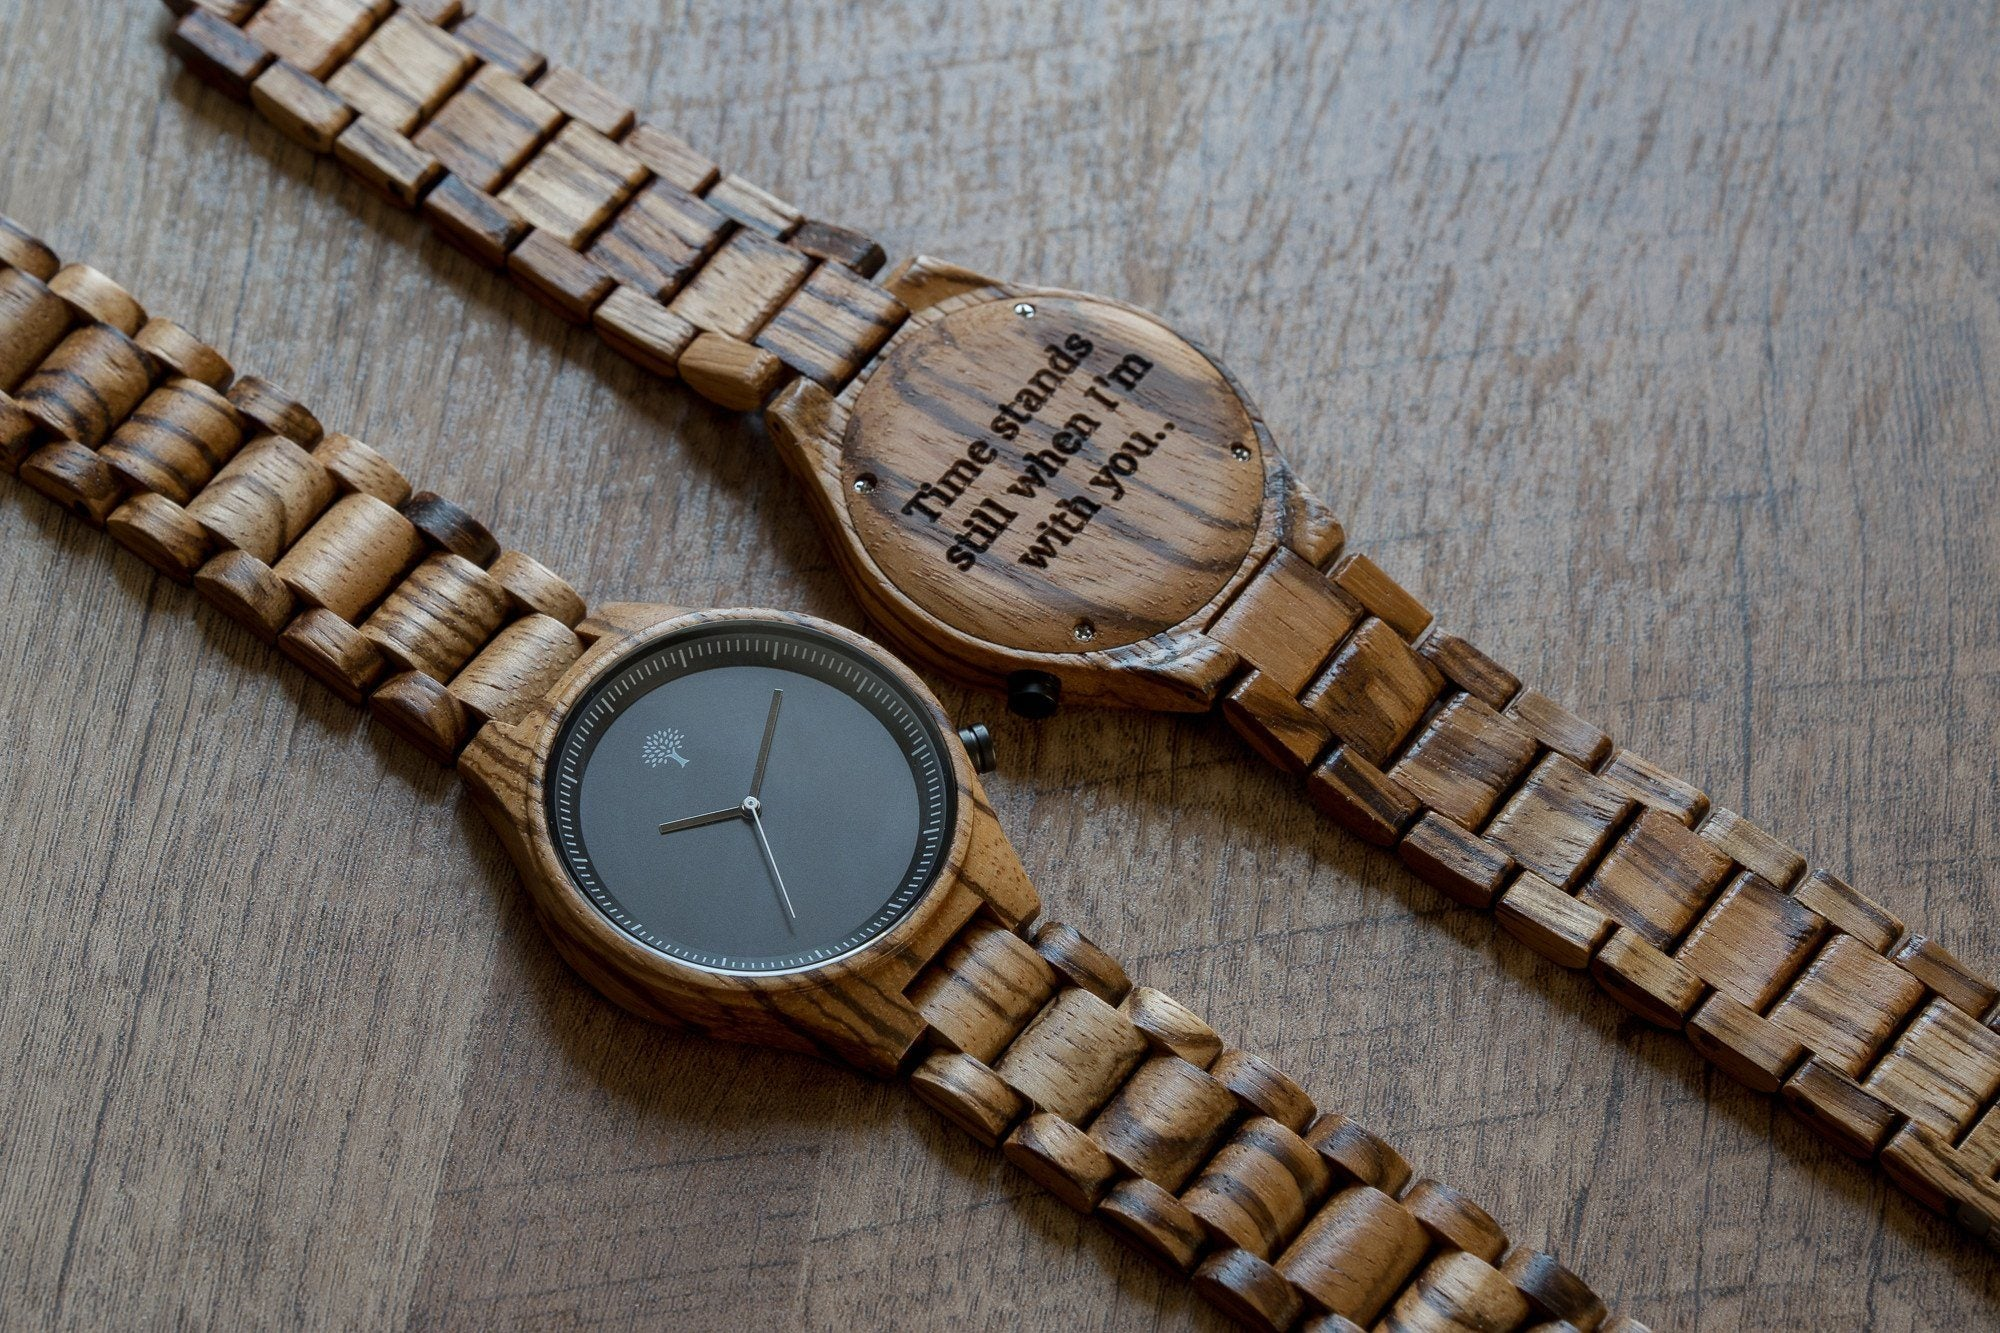 by with customizable custom use a made engraved laser unique projects watches and infinite fully wood photo design possibilities wooden original watch woodburn